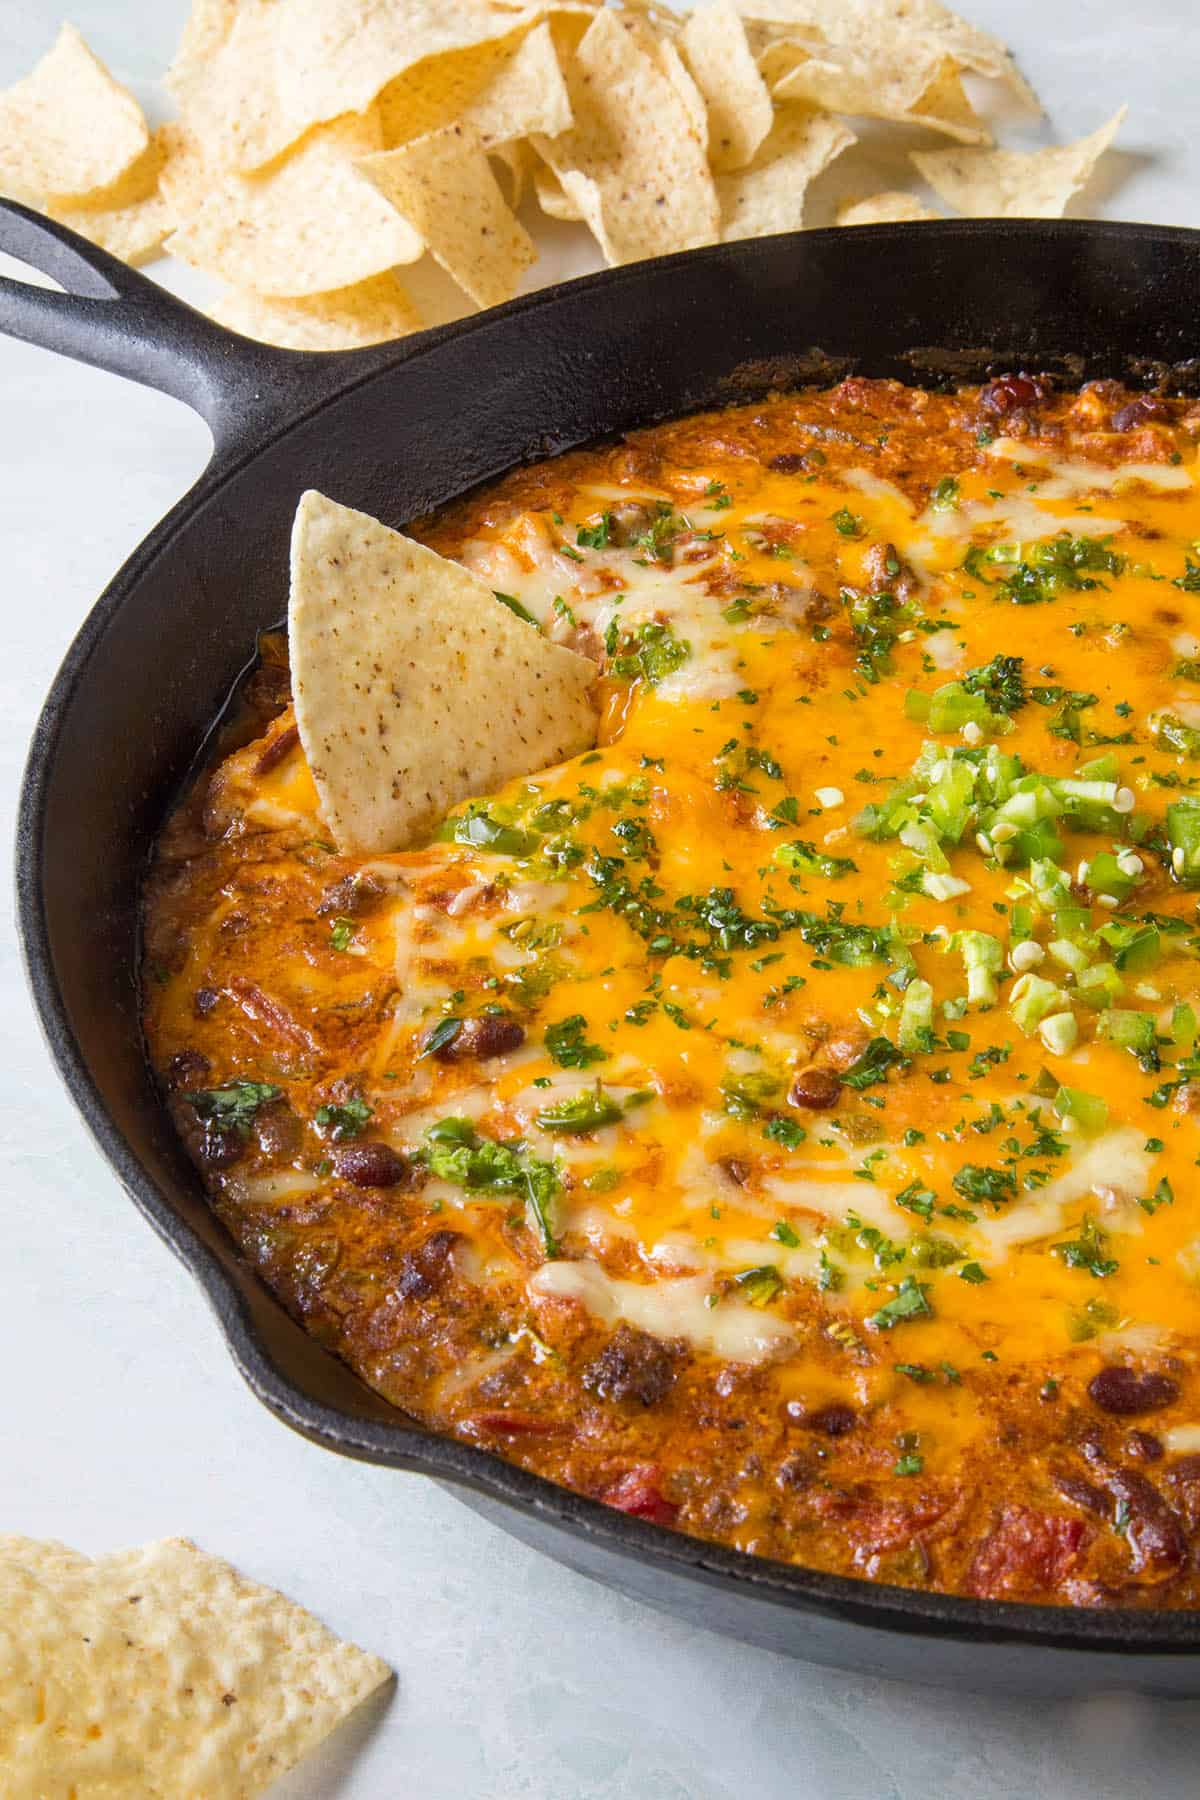 Meaty Chili Cheese Dip